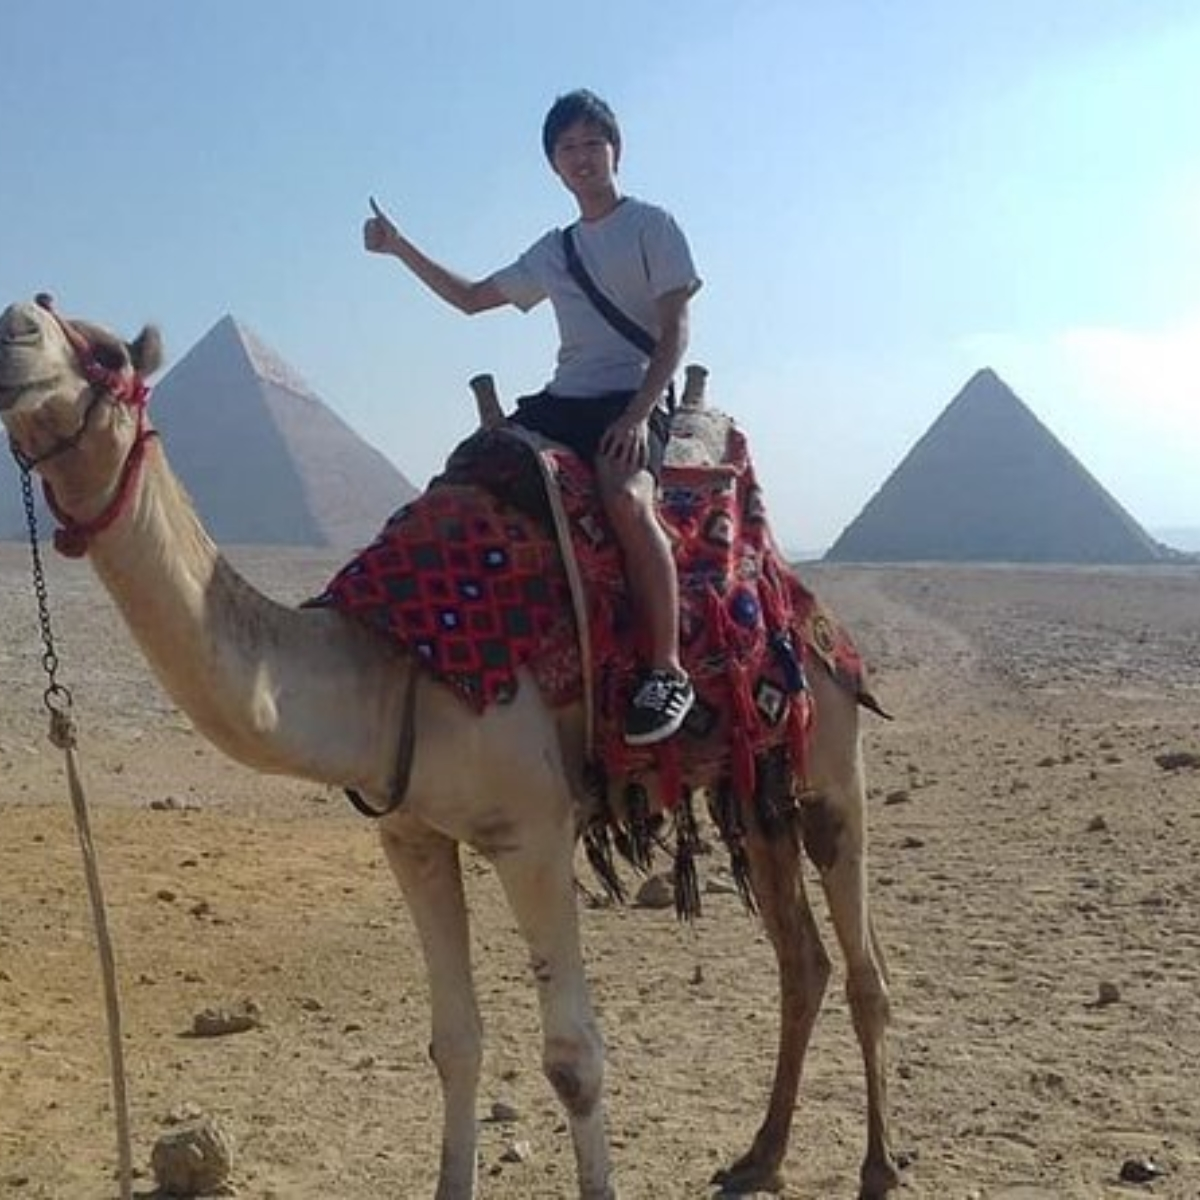 Explore the Pyramids of Giza and Egyptian Museum and Bazaar include Camel Ride, Lunch Images